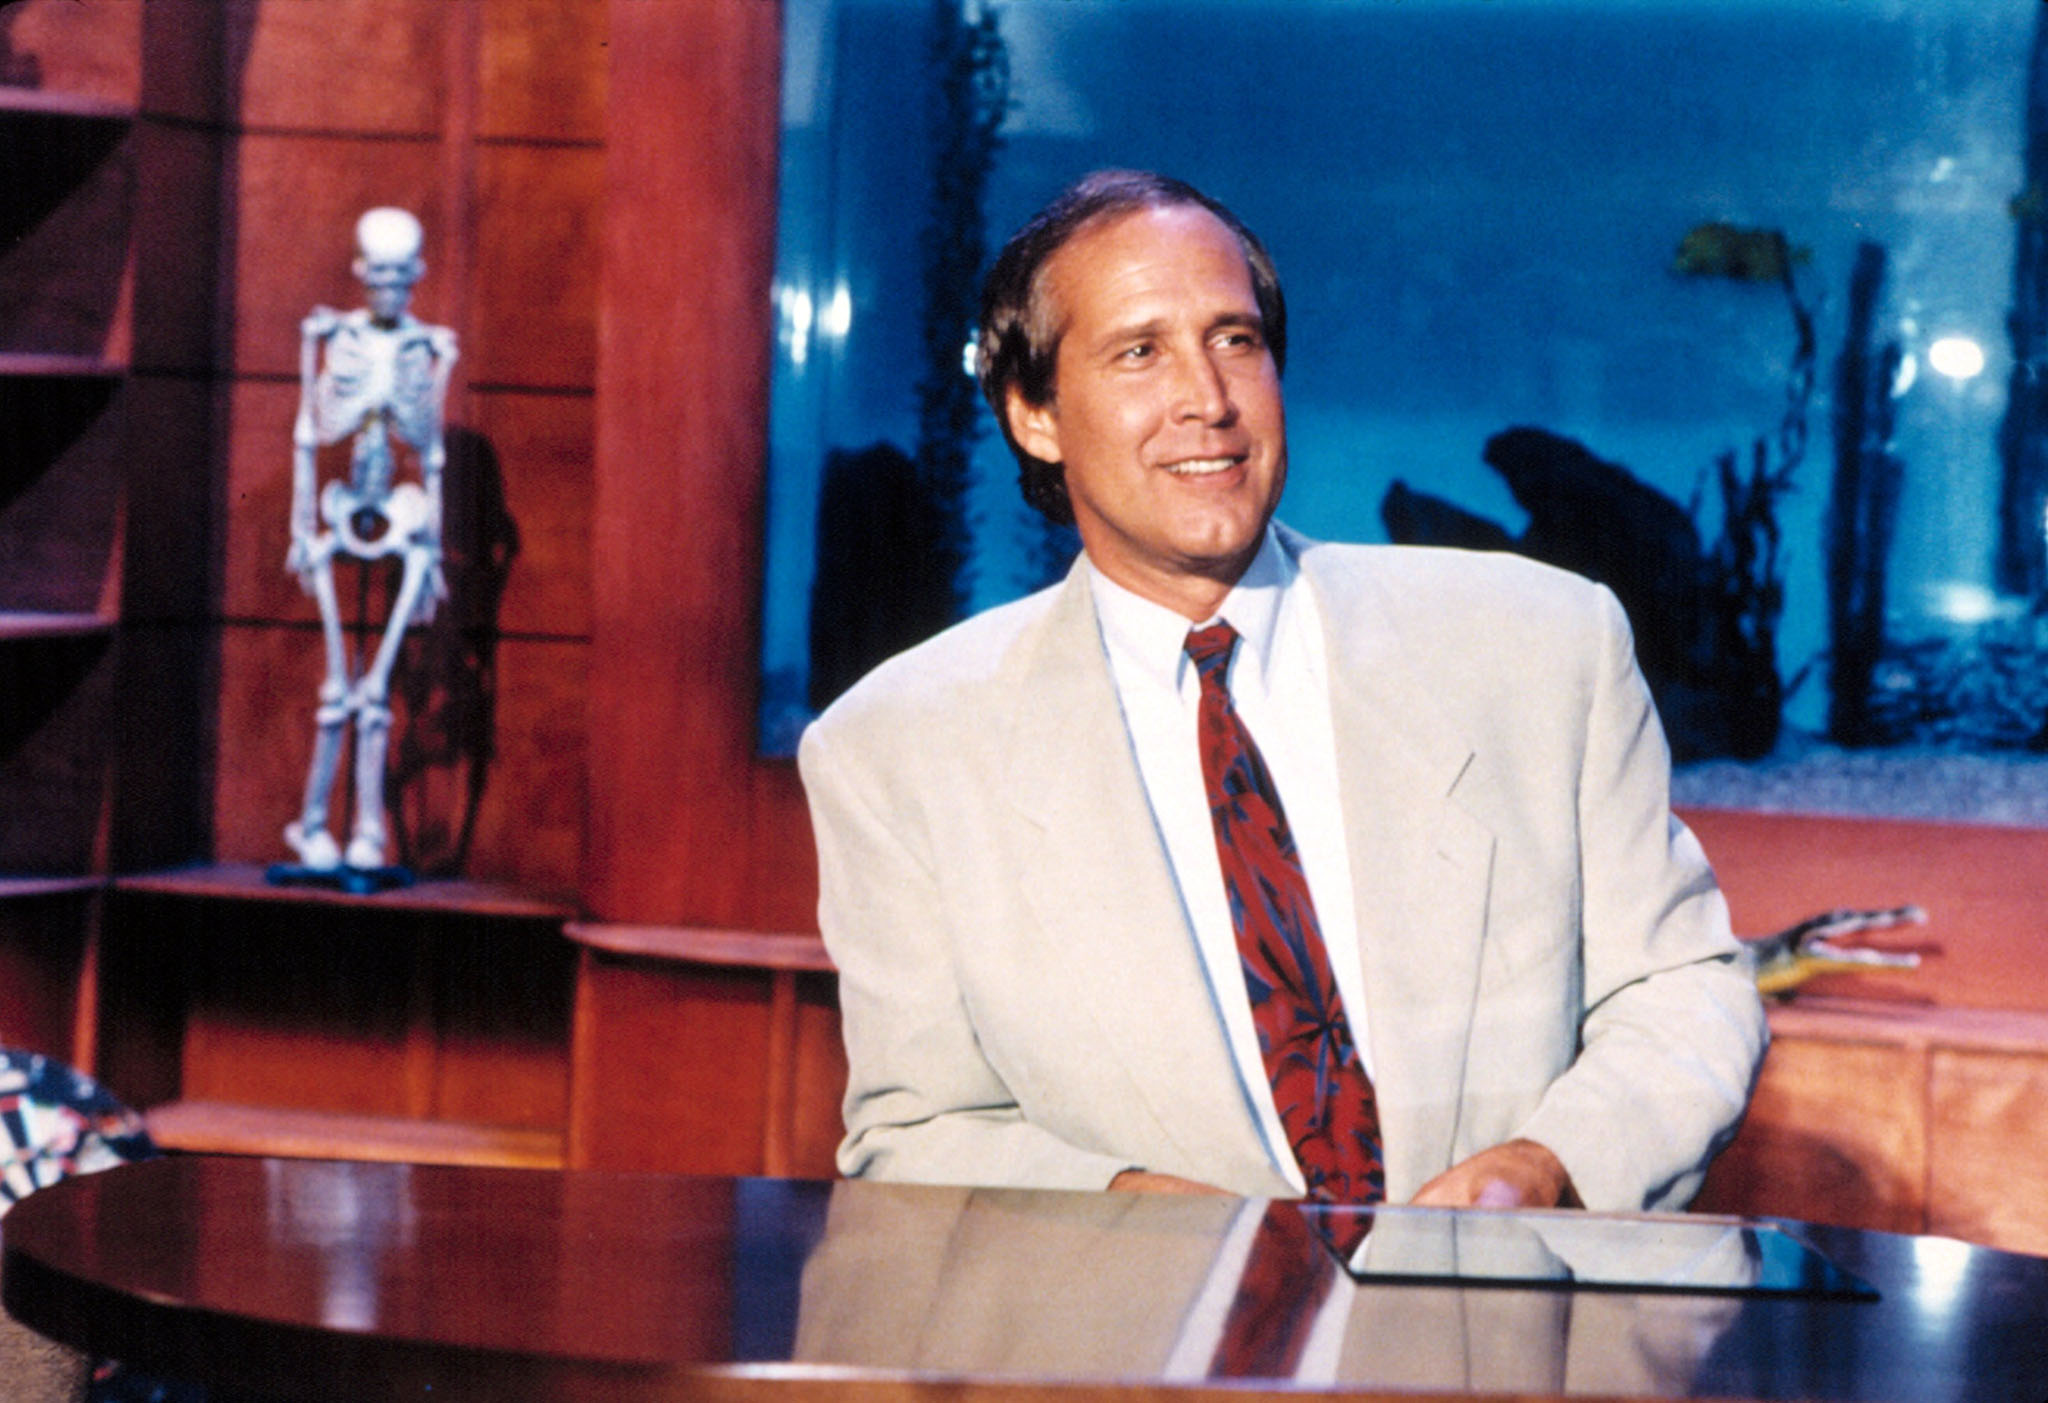 Chevy Chase hosting Fox's 'The Chevy Chase Show' in 1993 (Everett Collection)